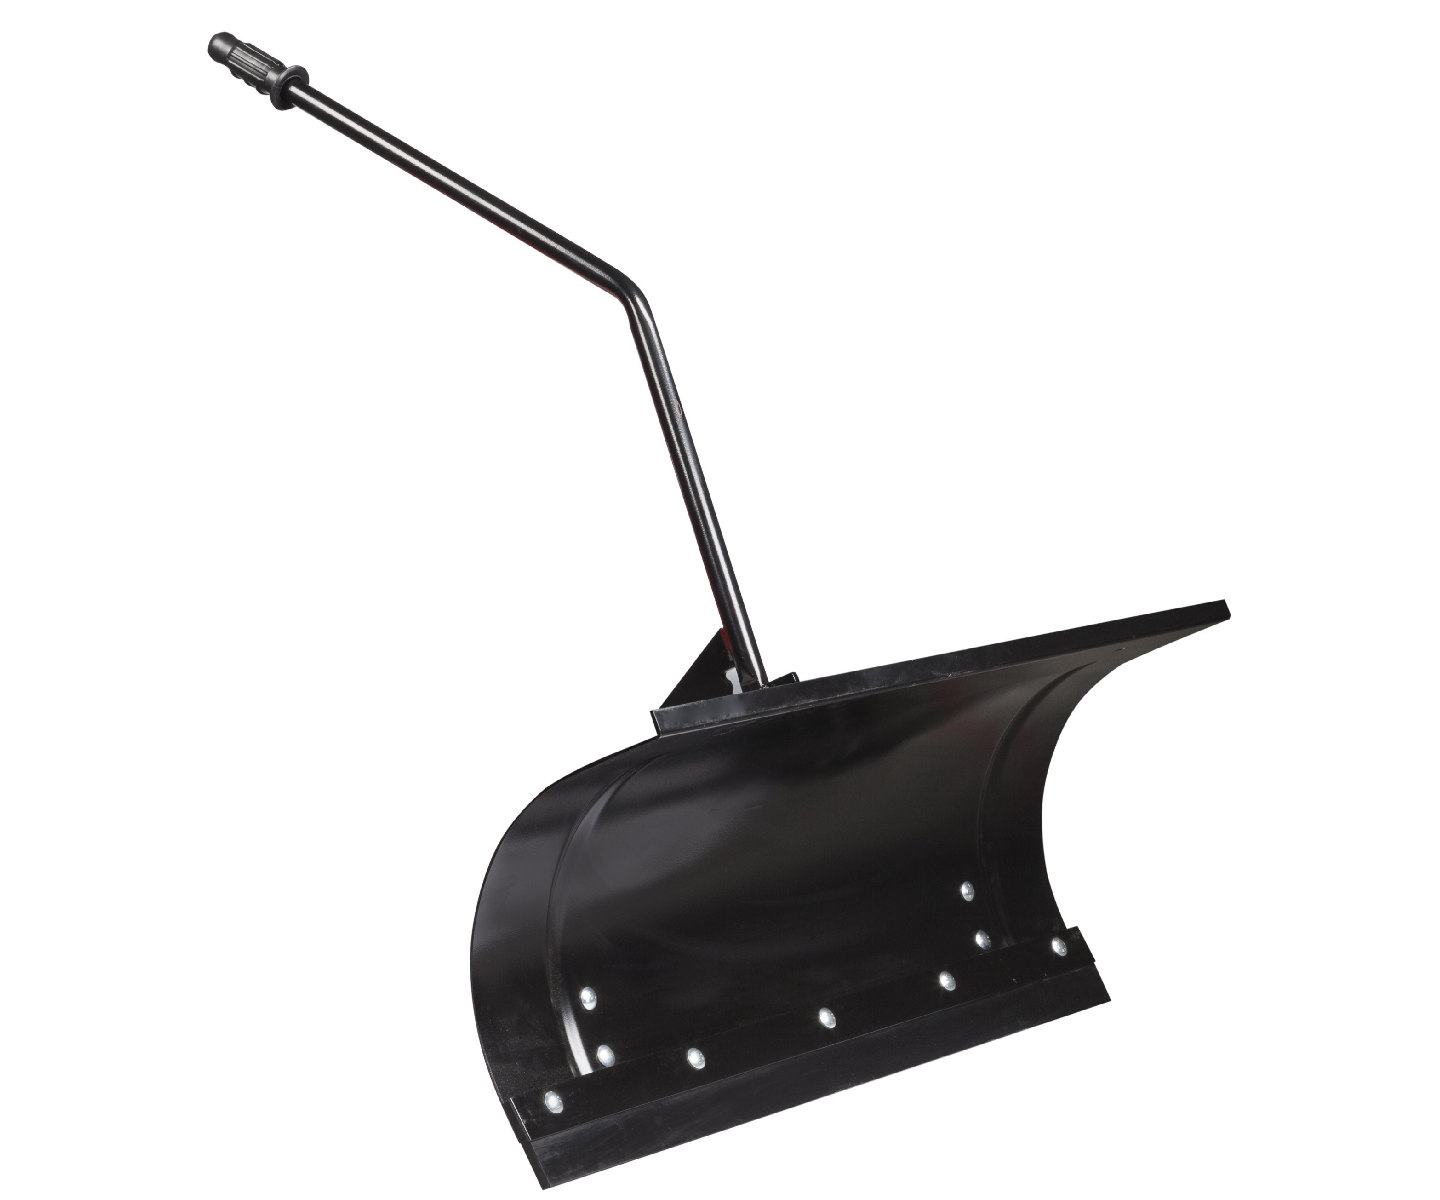 AL-KO RS850 Snow Plough combi attachment for BF5002-R